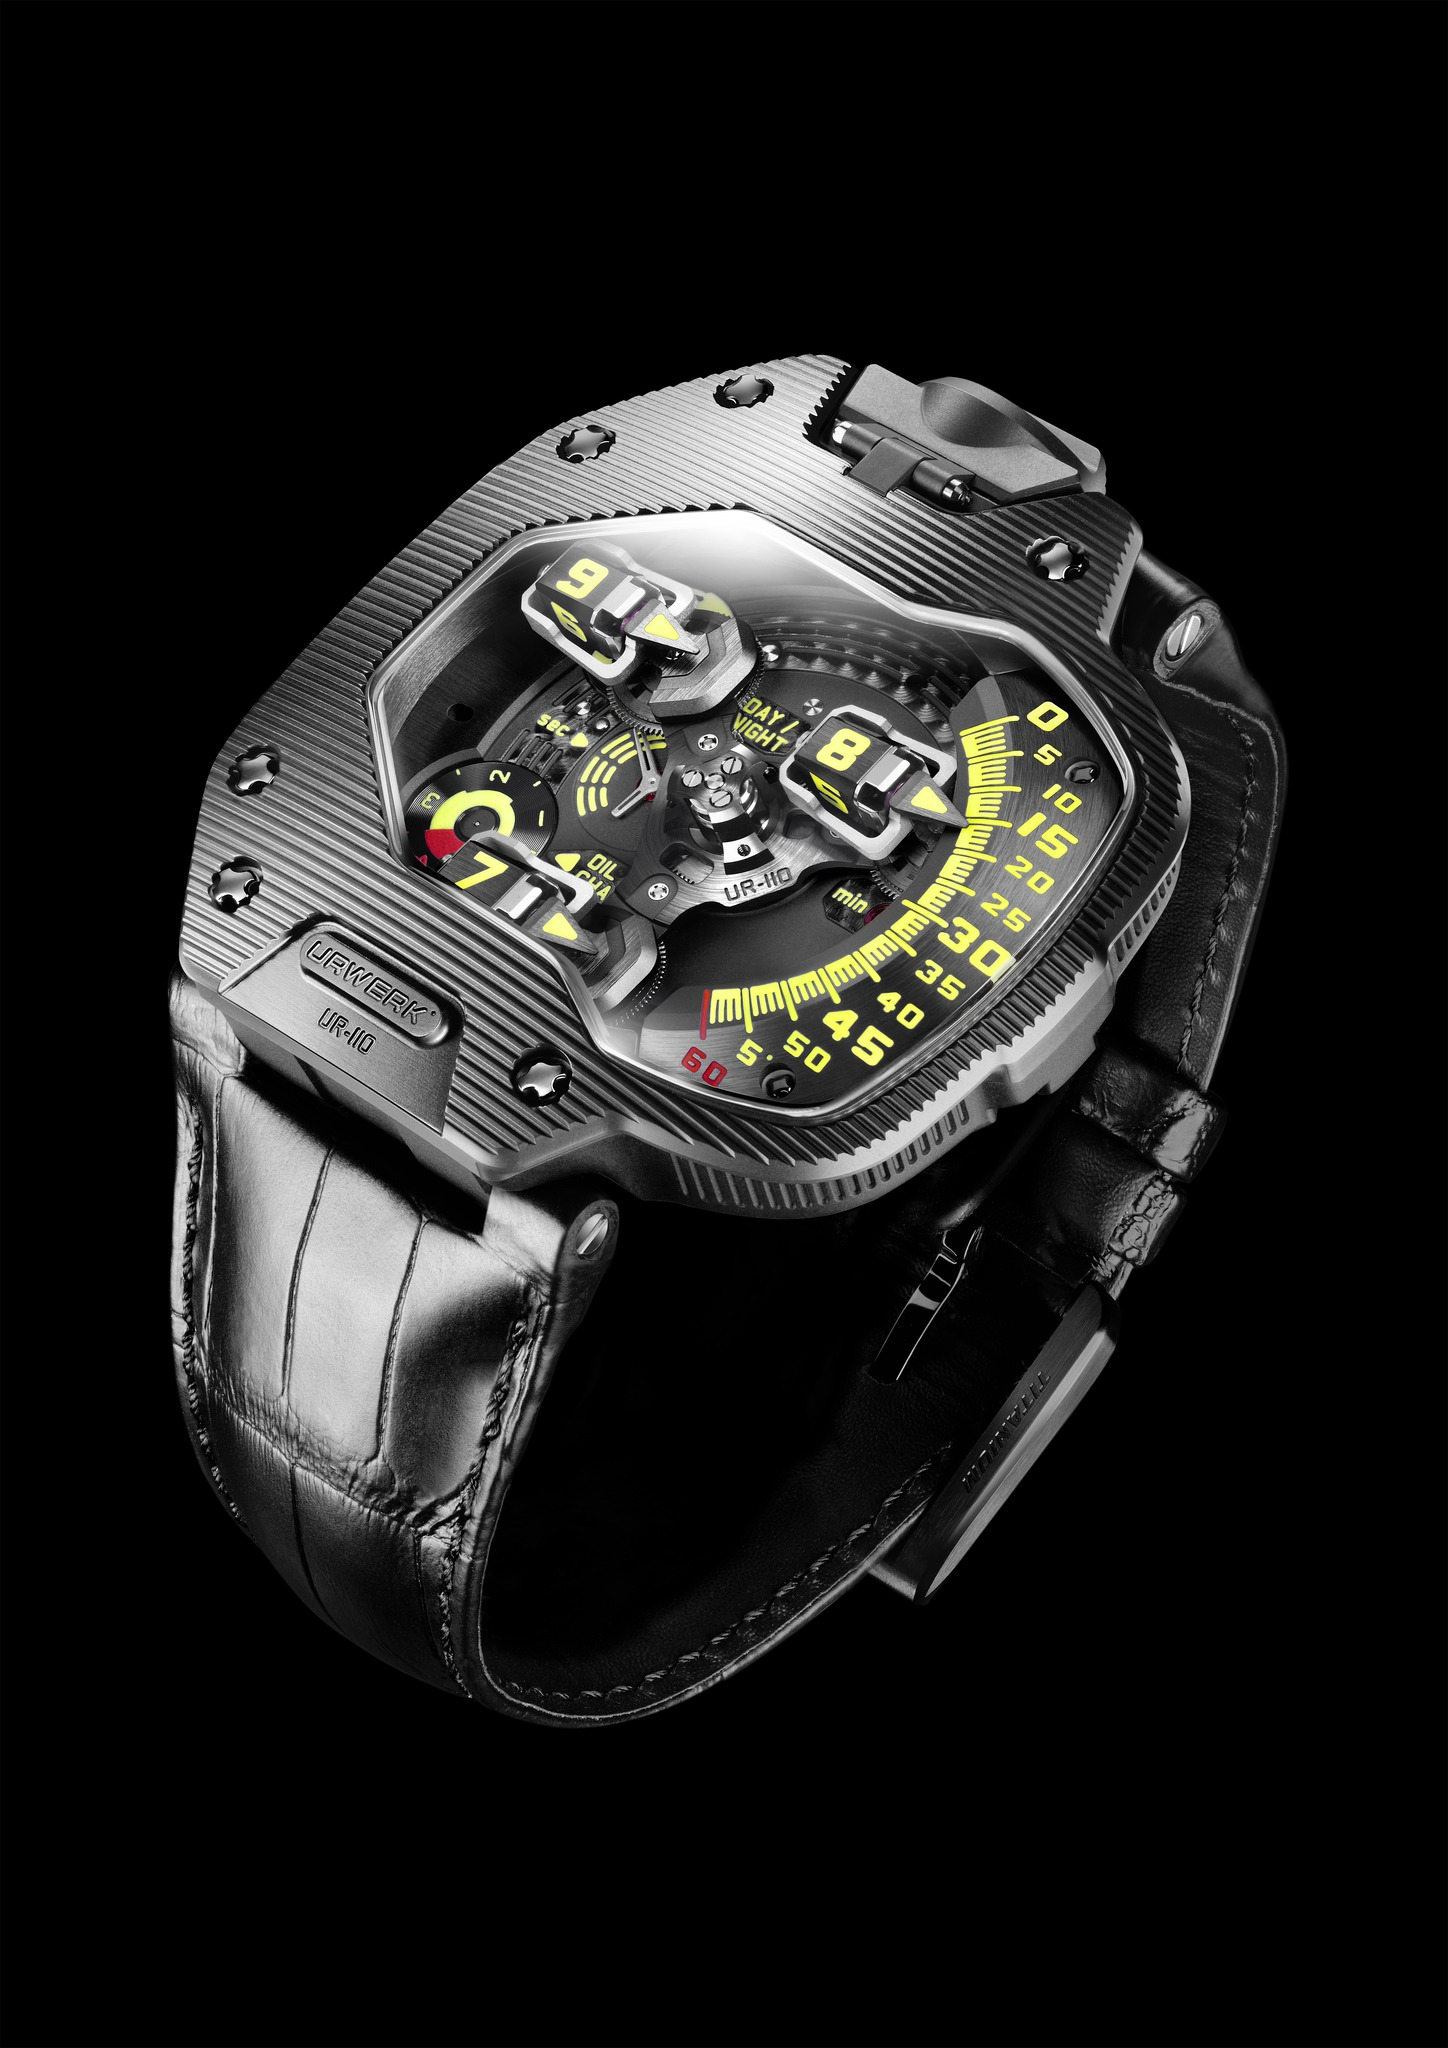 Replica Urwerk UR-110 ST Black DLC Titanium Watch